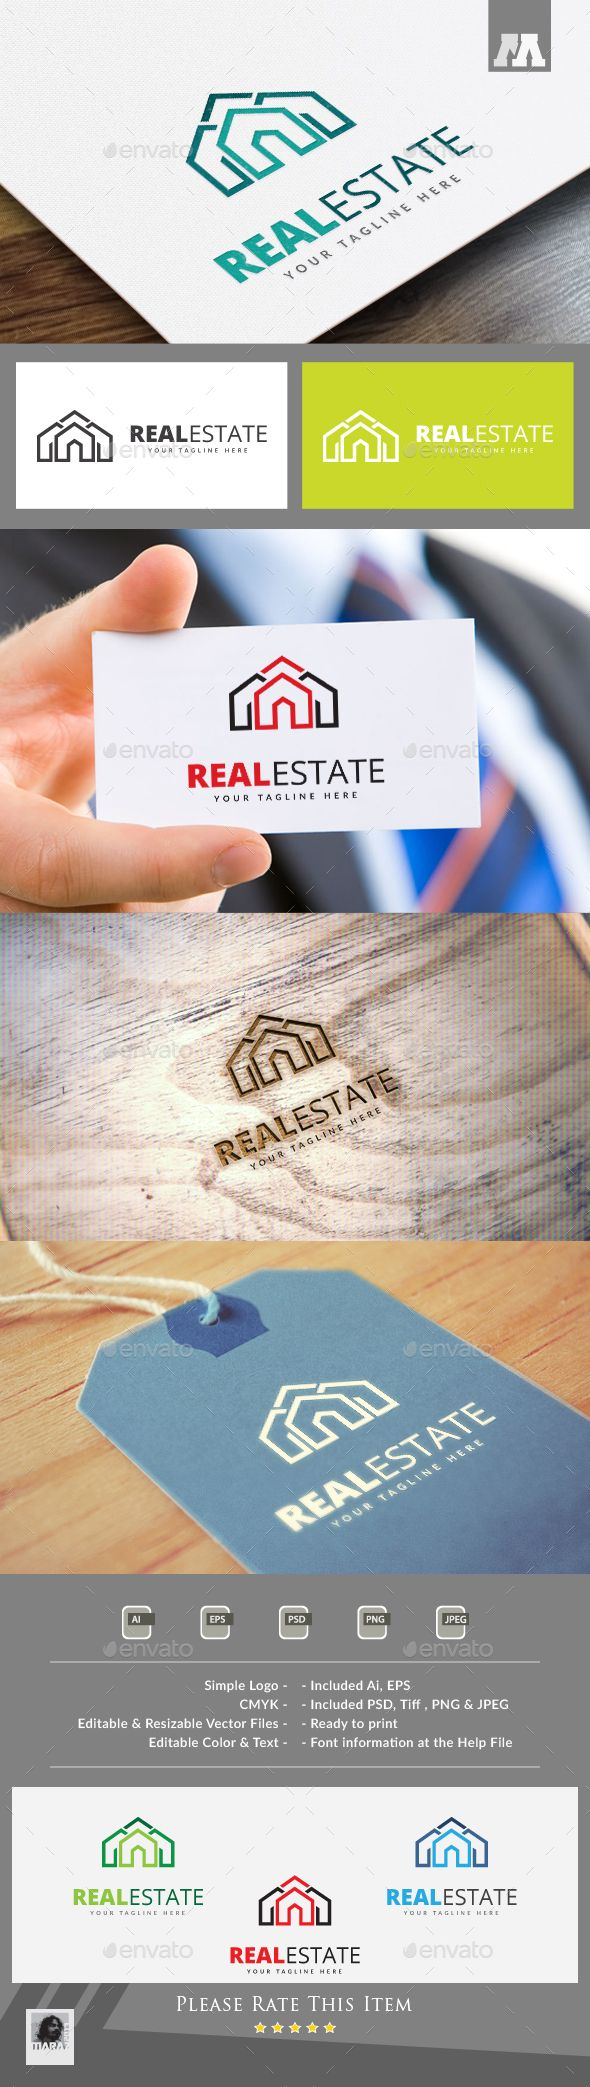 Real Estate Logo Design Template Vector #logotype Download it here: http://graphicriver.net/item/real-estate-logo/13728655?s_rank=677?ref=nexion